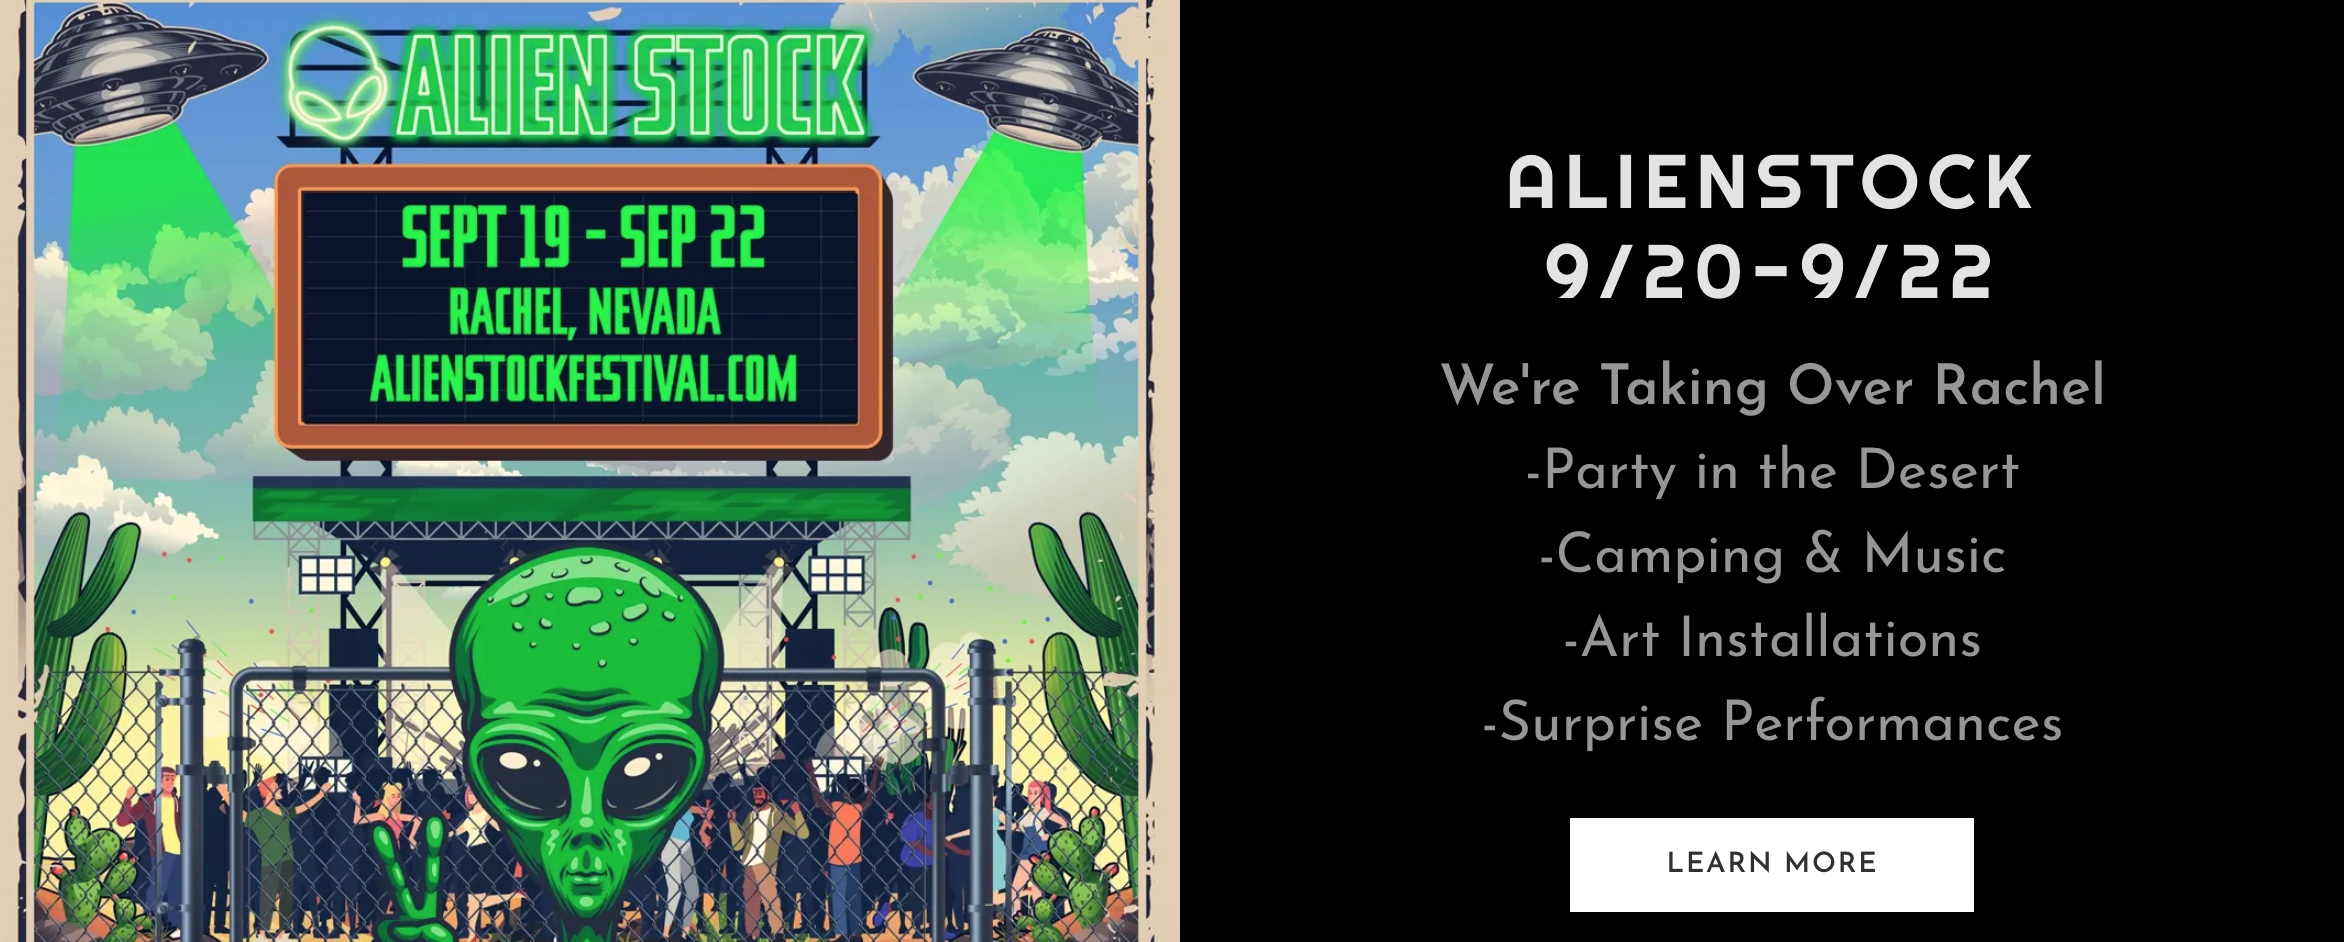 Storm Area 51' organizer to throw 'Alien Stock' festival in